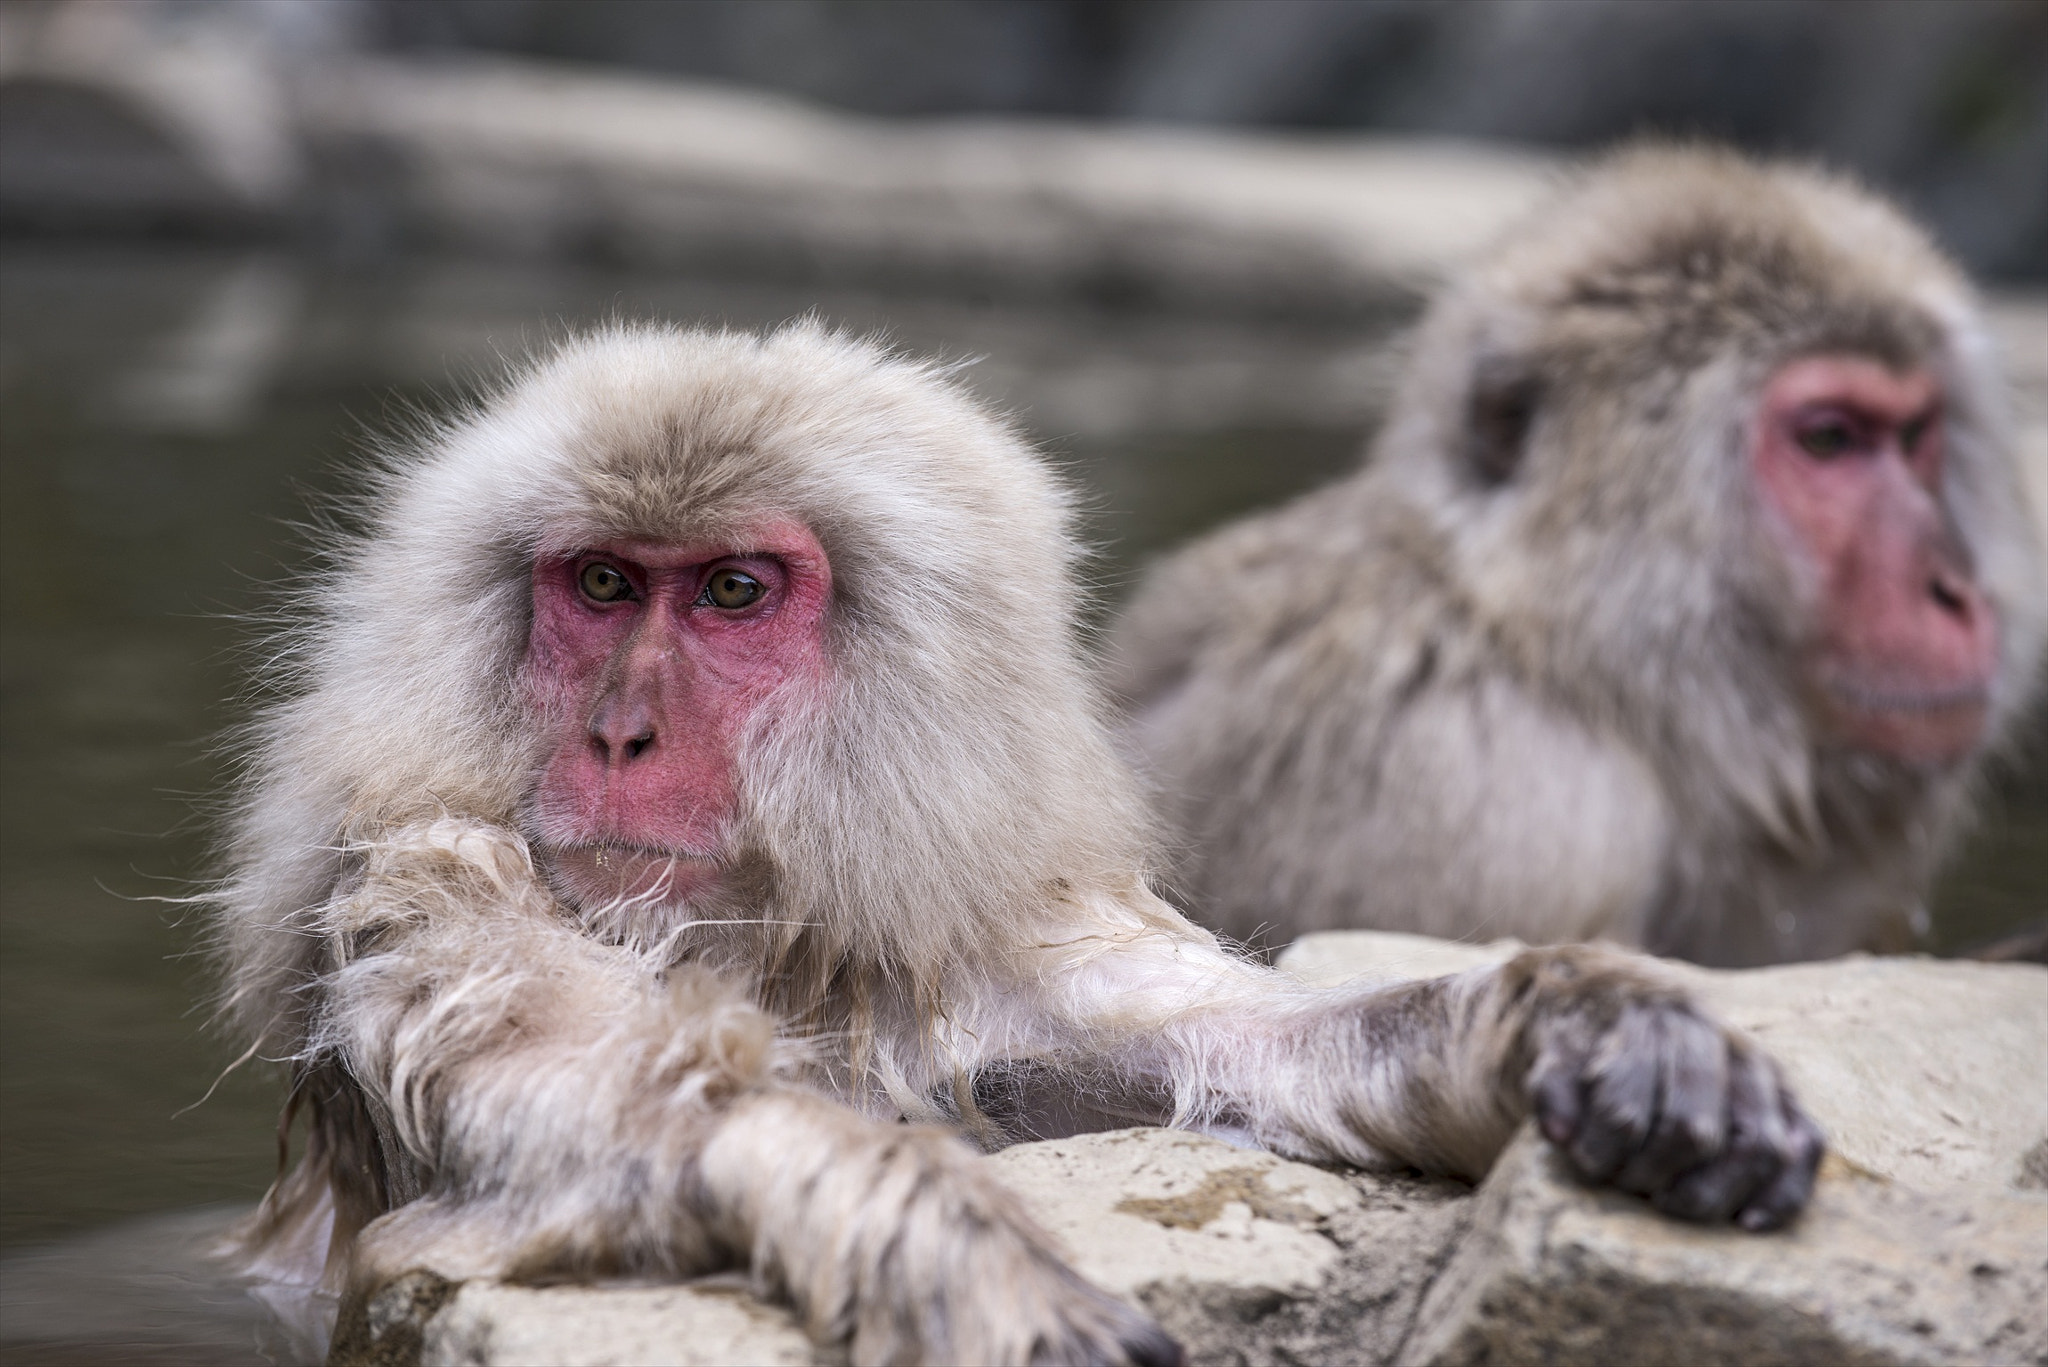 Photograph Monkeys in the Hot Spring by hugh dornan on 500px